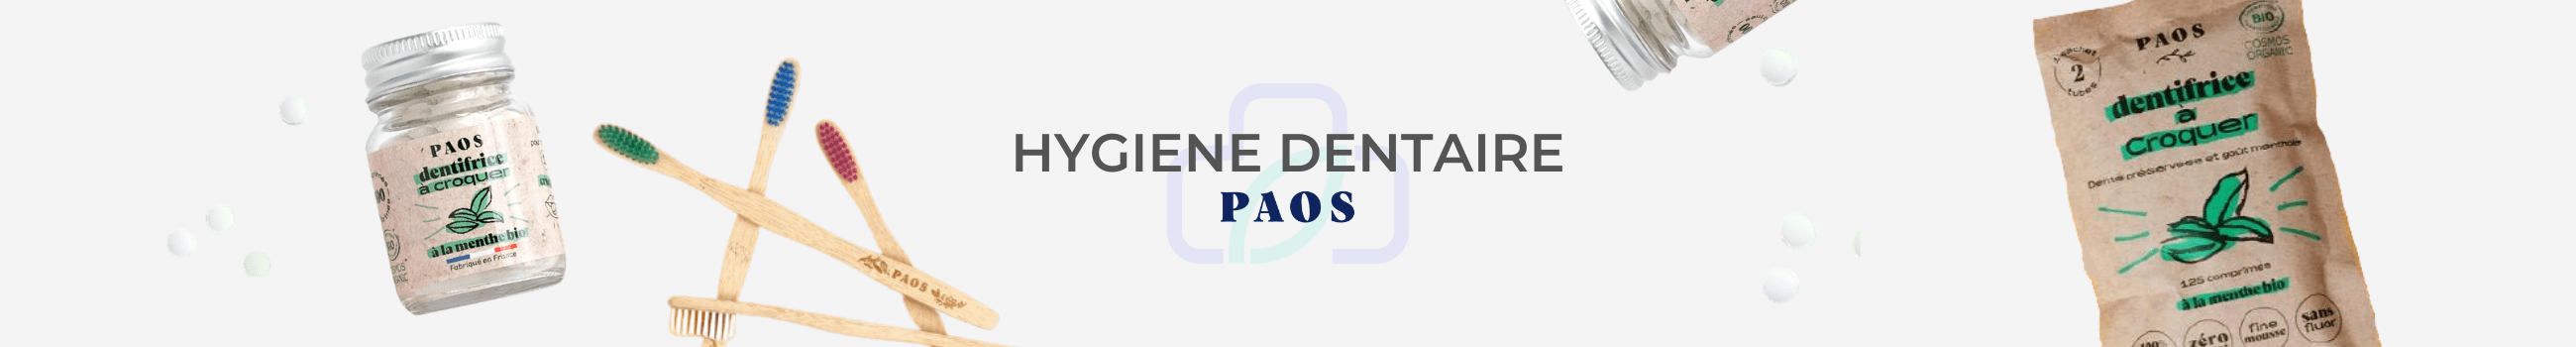 BANNIERE HYGIENE DENTAIRE PAOS DENTIFRICE A CROQUER SOLIDE BROSSE A DENT